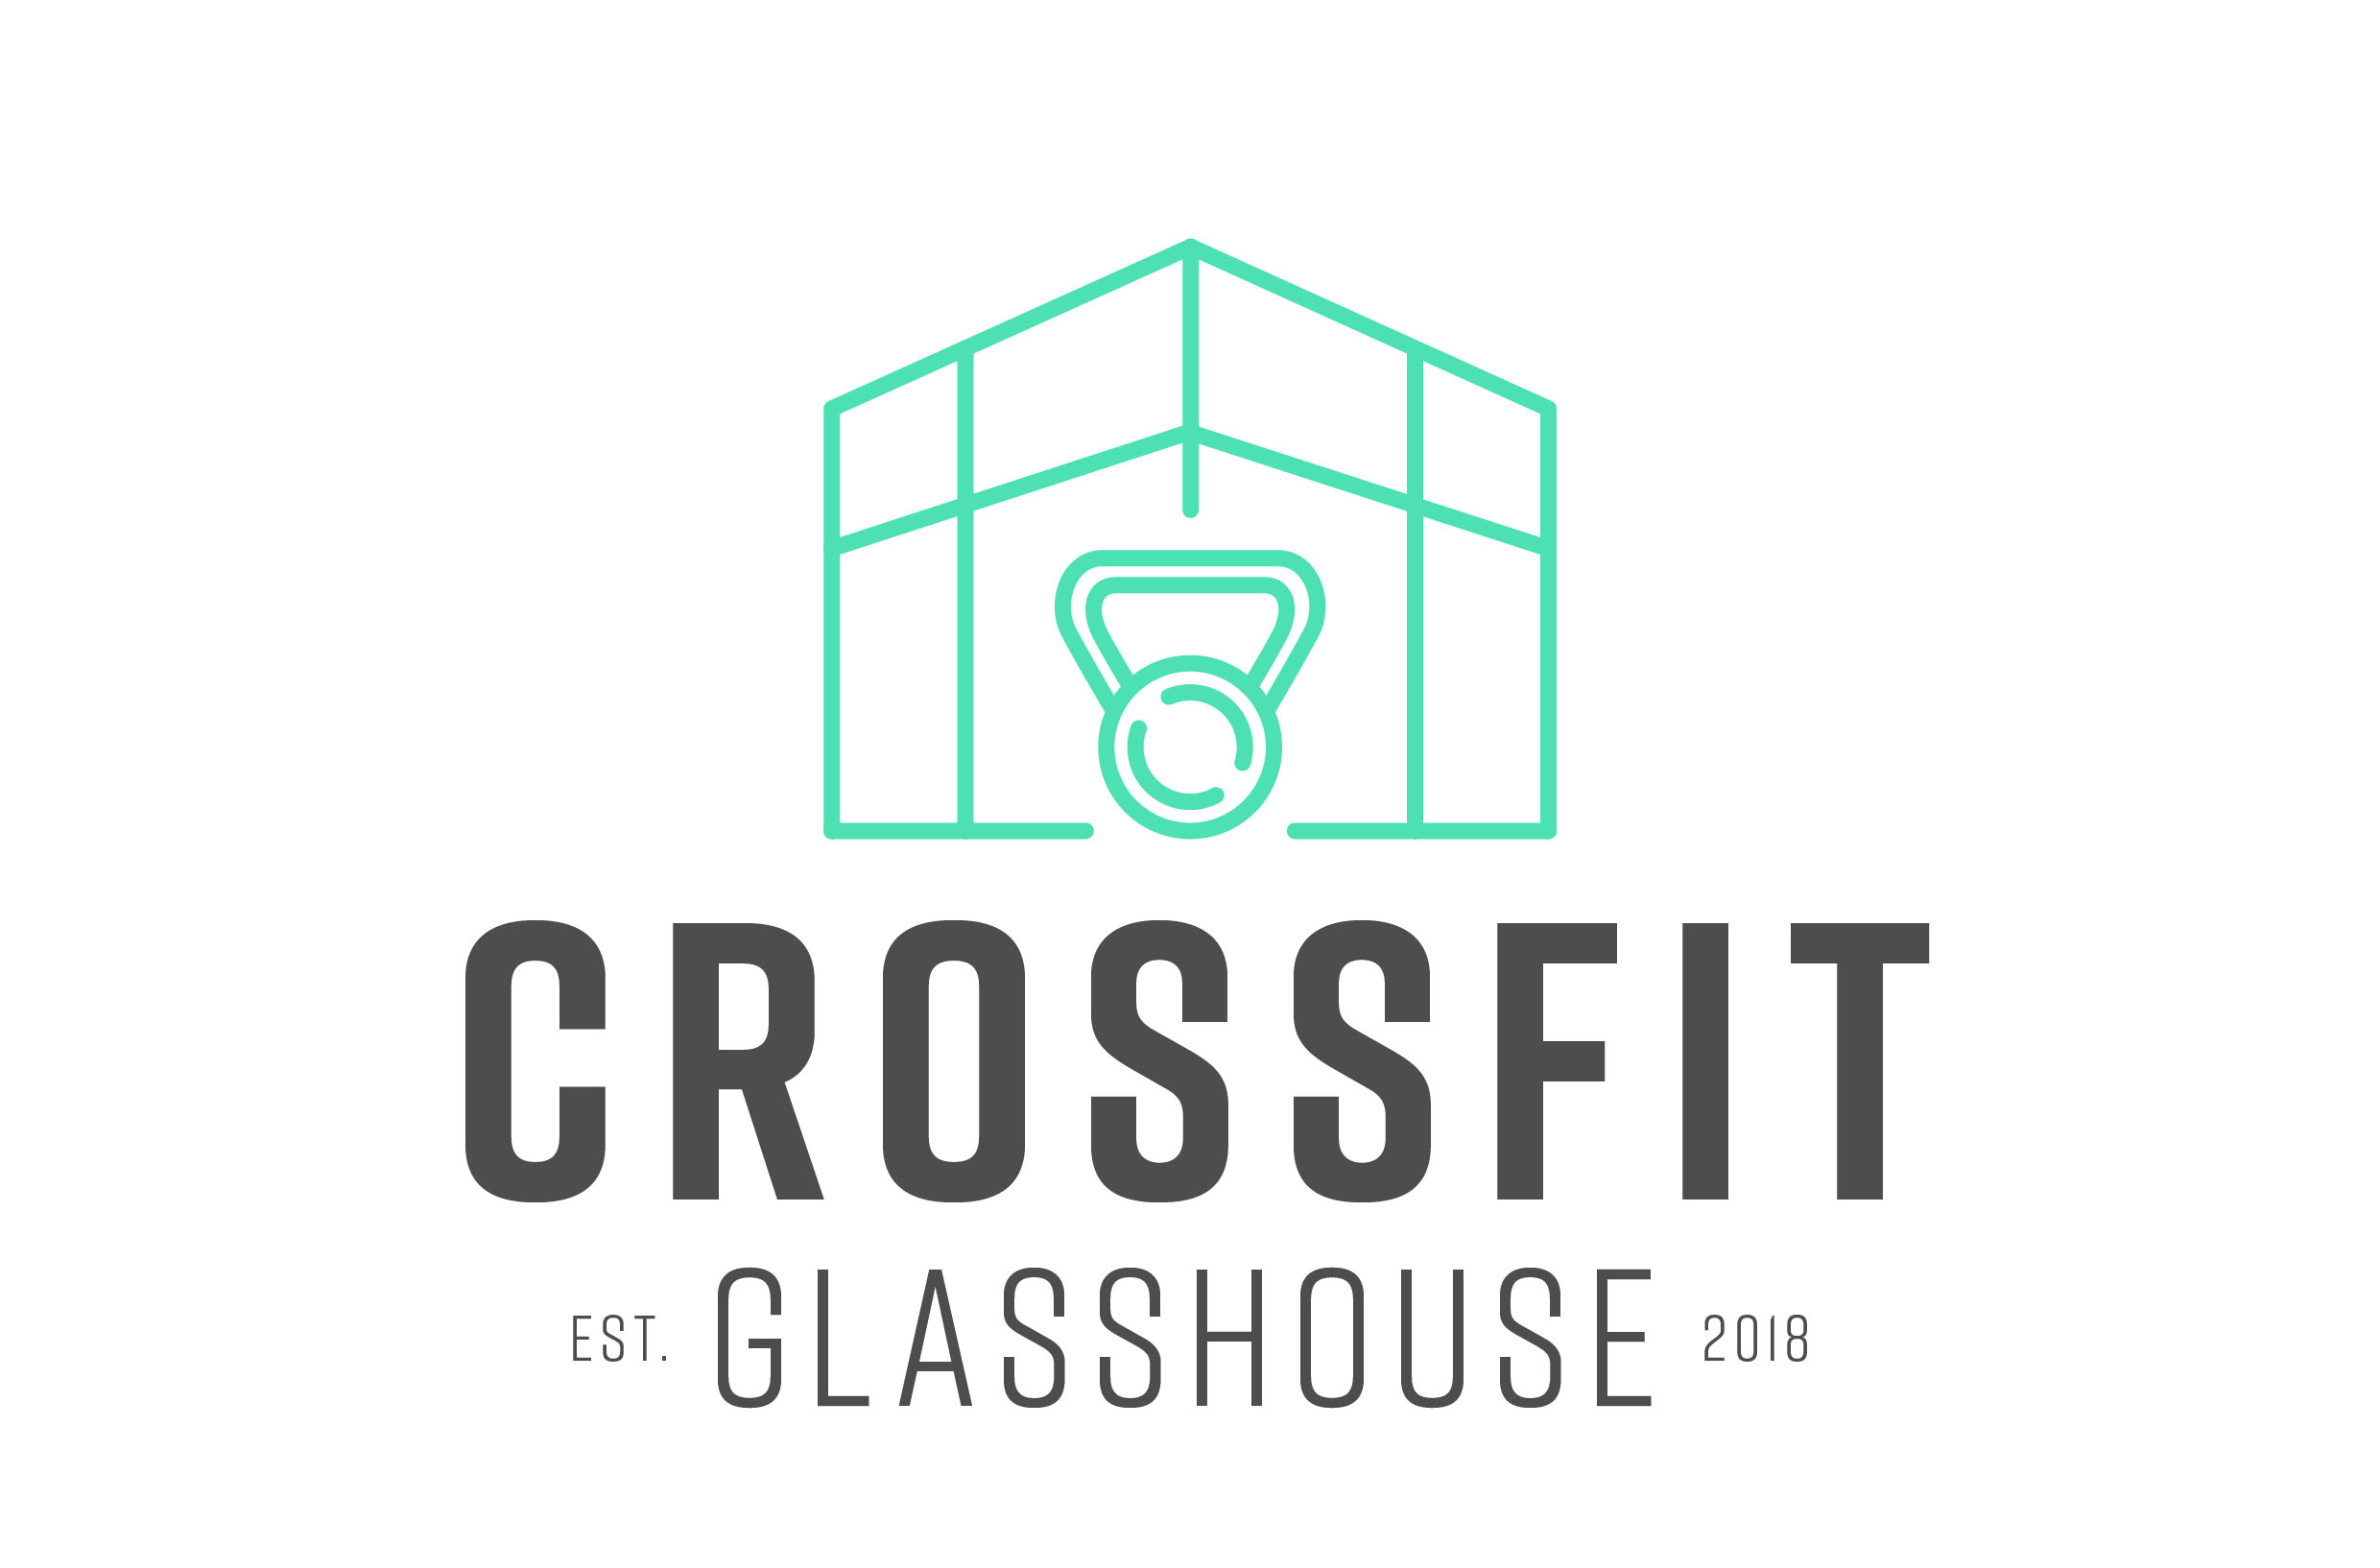 CrossFit Glasshouse